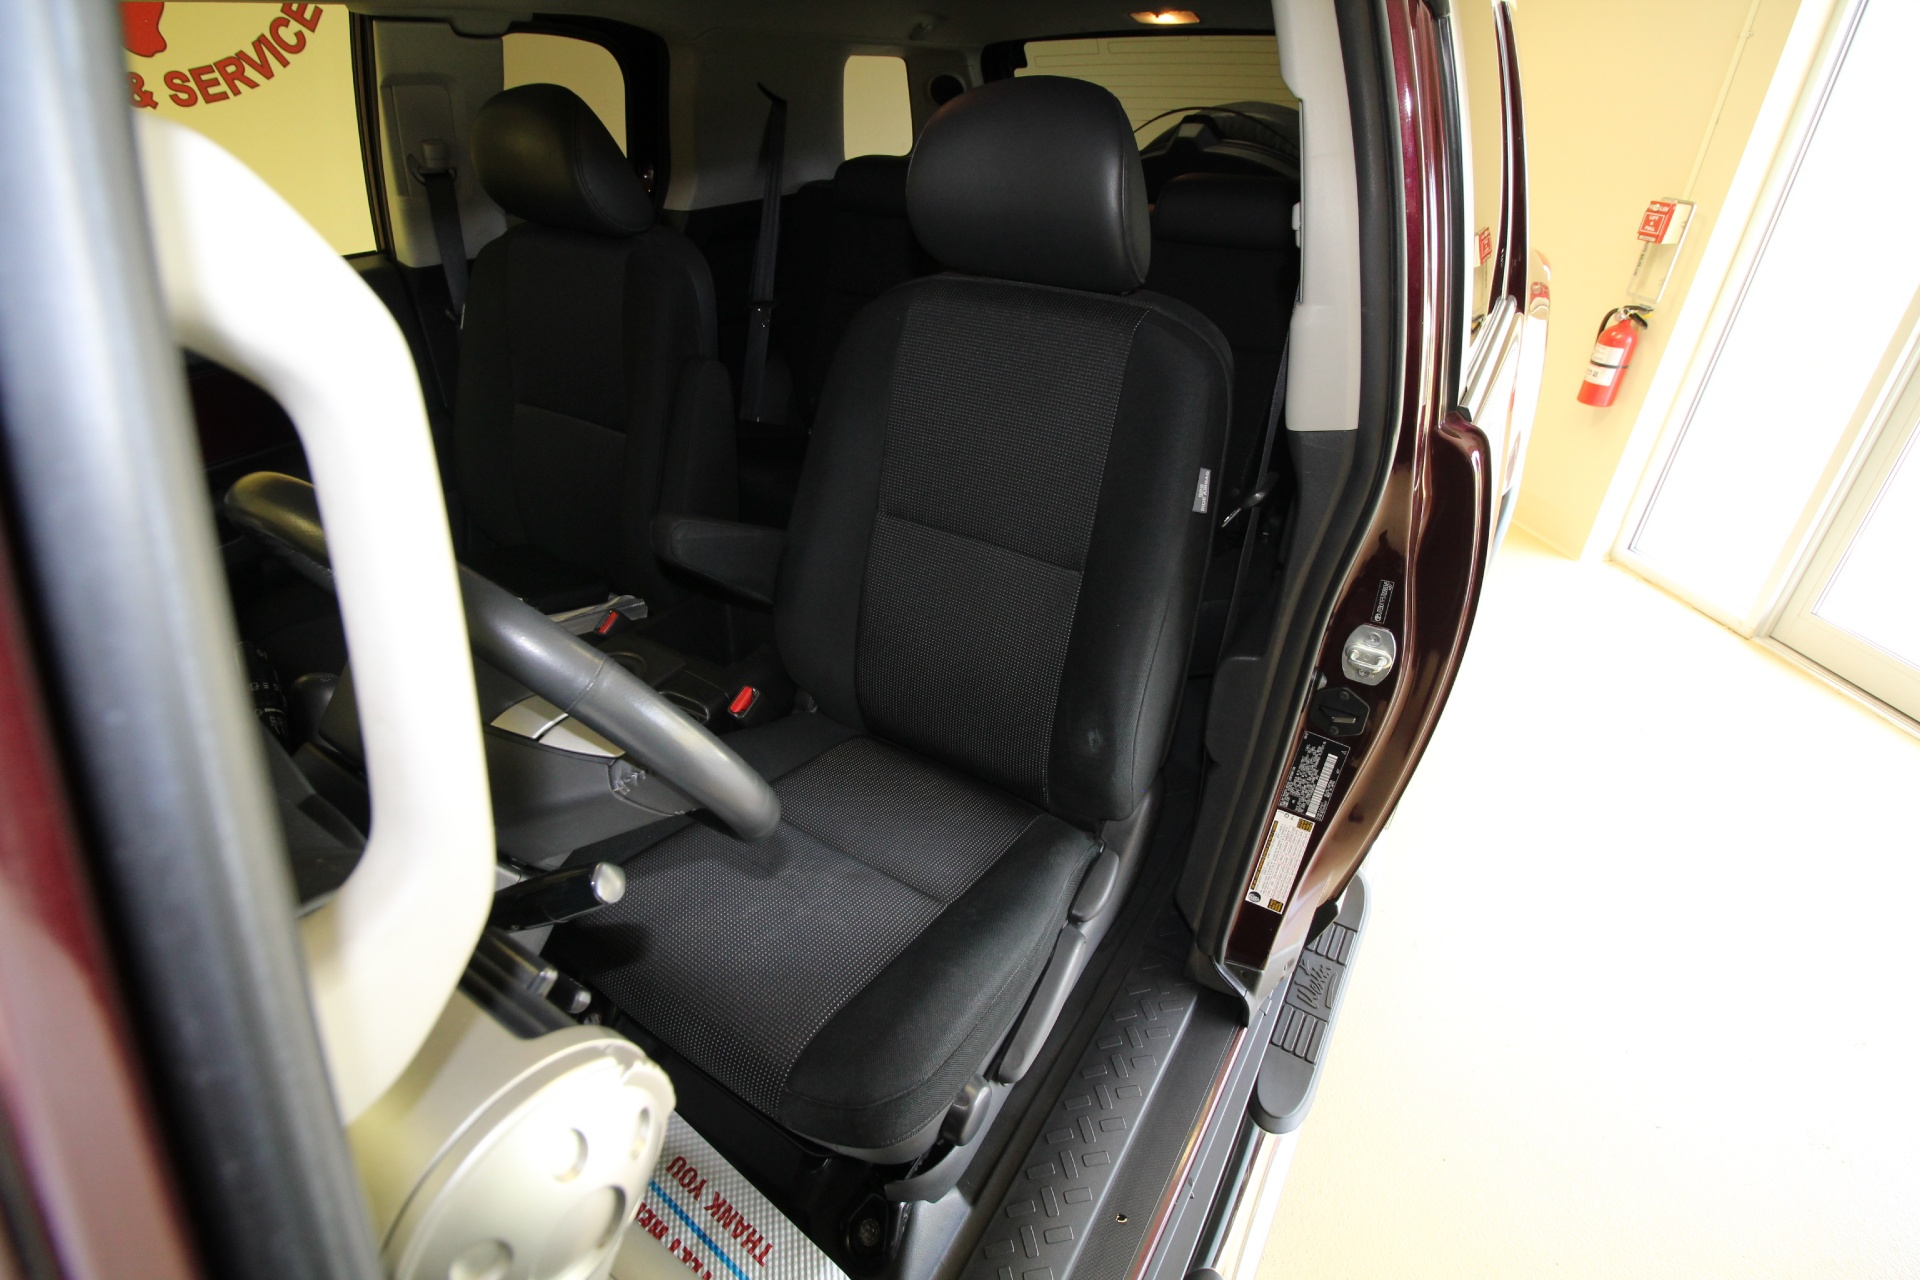 Used 2007 Toyota FJ Cruiser 1 OWNER,SUPER CLEAN,LOW MILES,RARE MANUAL,STICK SHIFT | Albany, NY